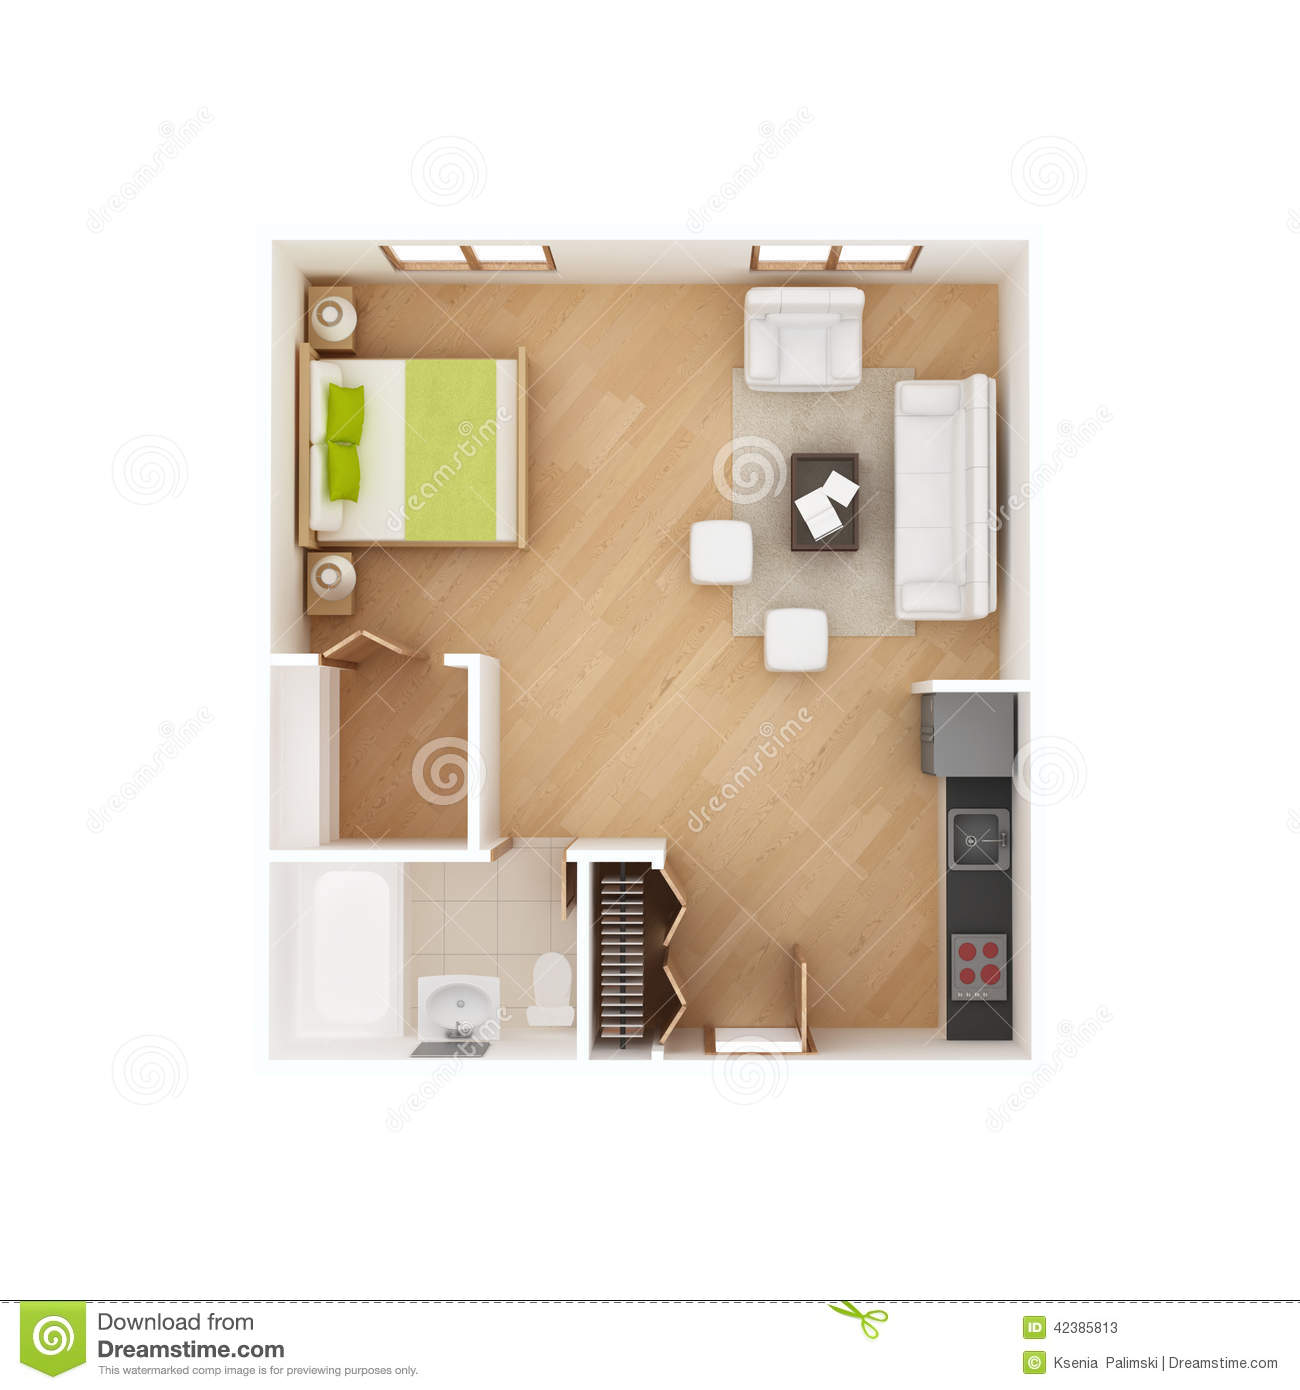 Small Apartment Floor Plans Floor Plans Floor Plan